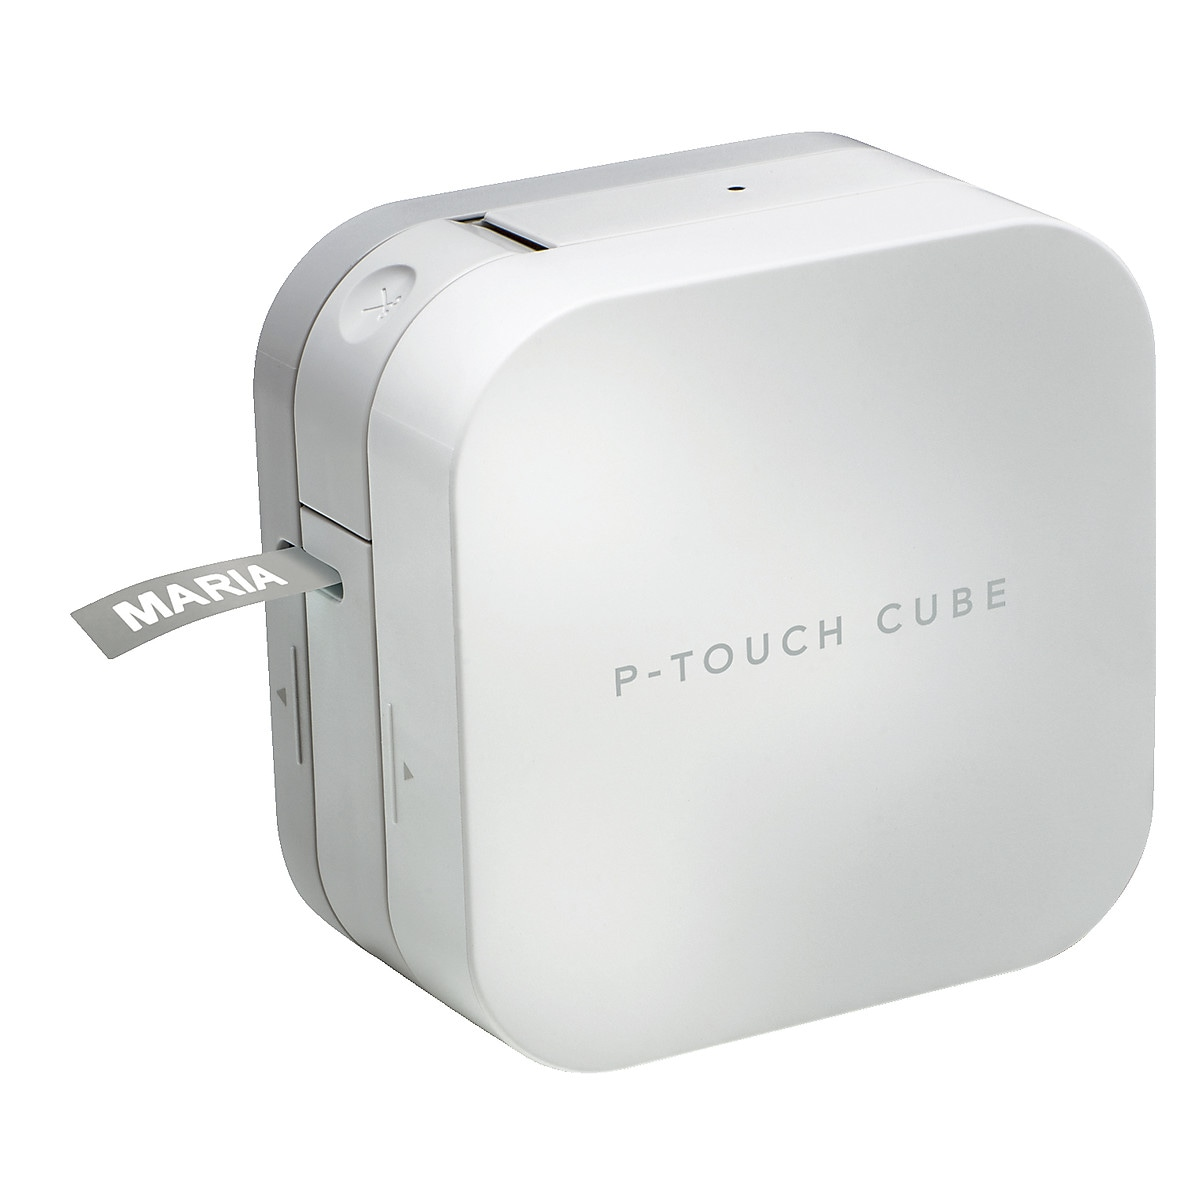 Brother P-touch Cube merkemaskin